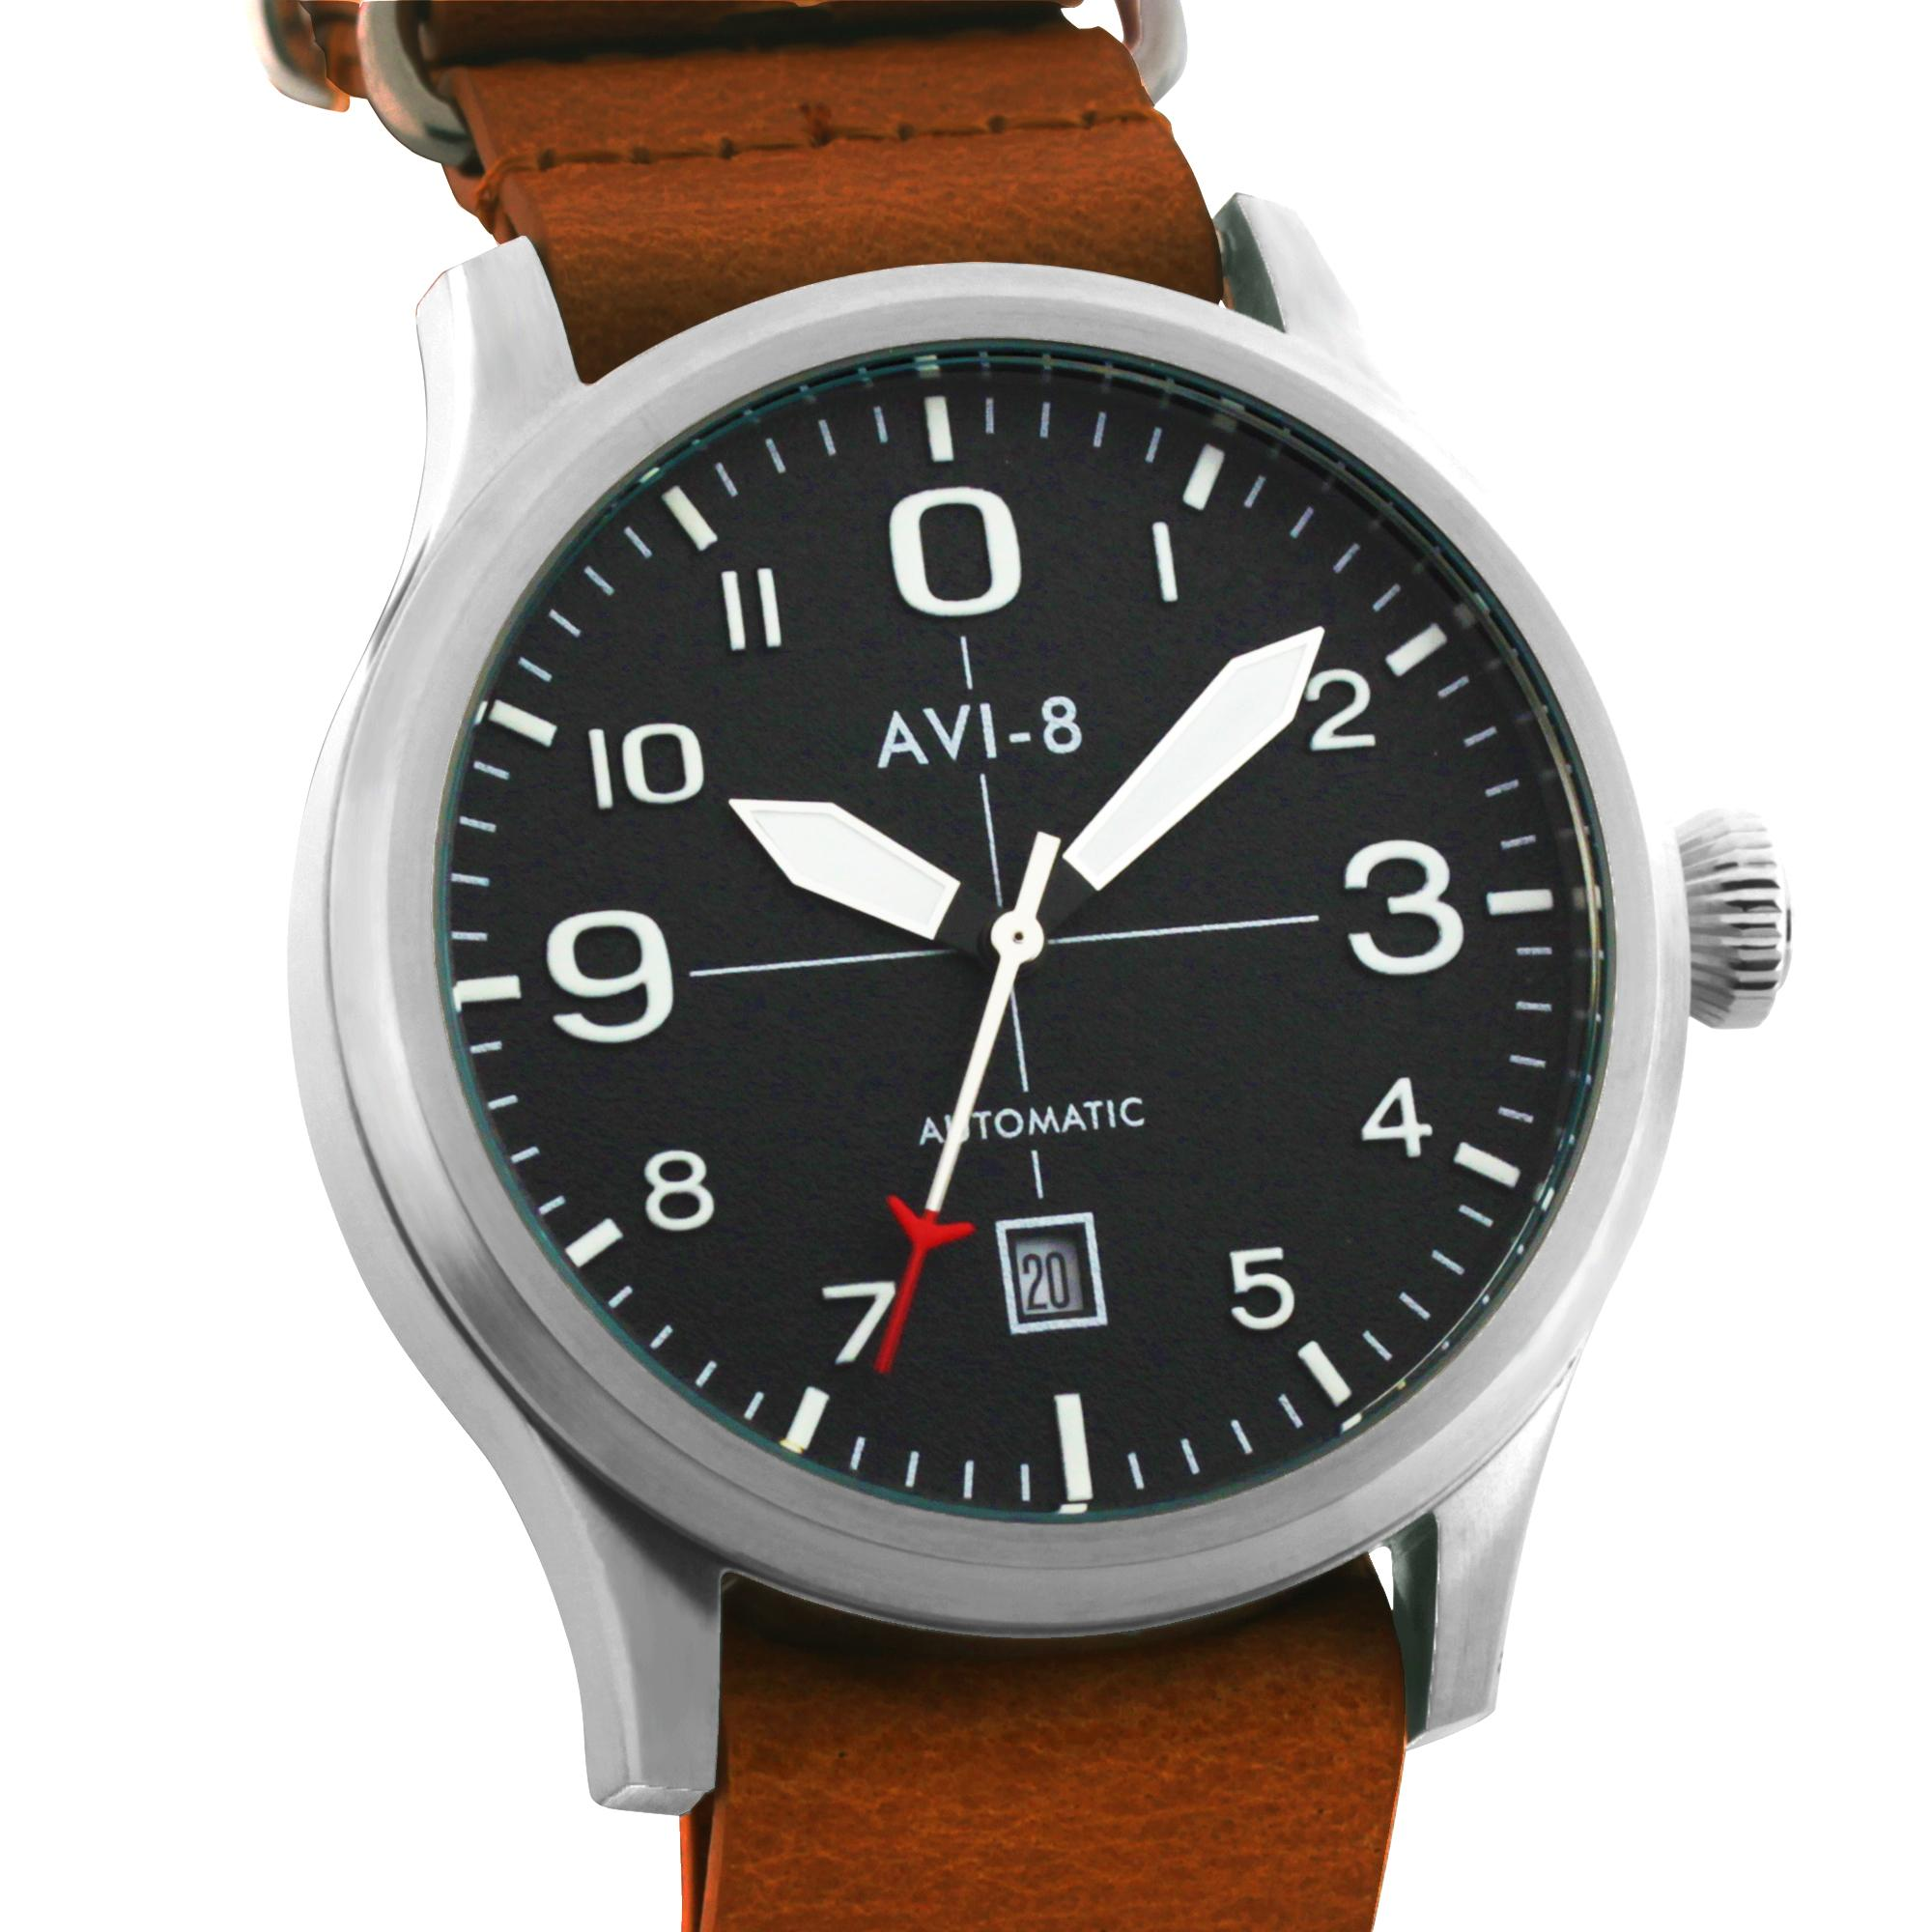 designed watches shop red download black products unique aviator aviation aircraft pointer with